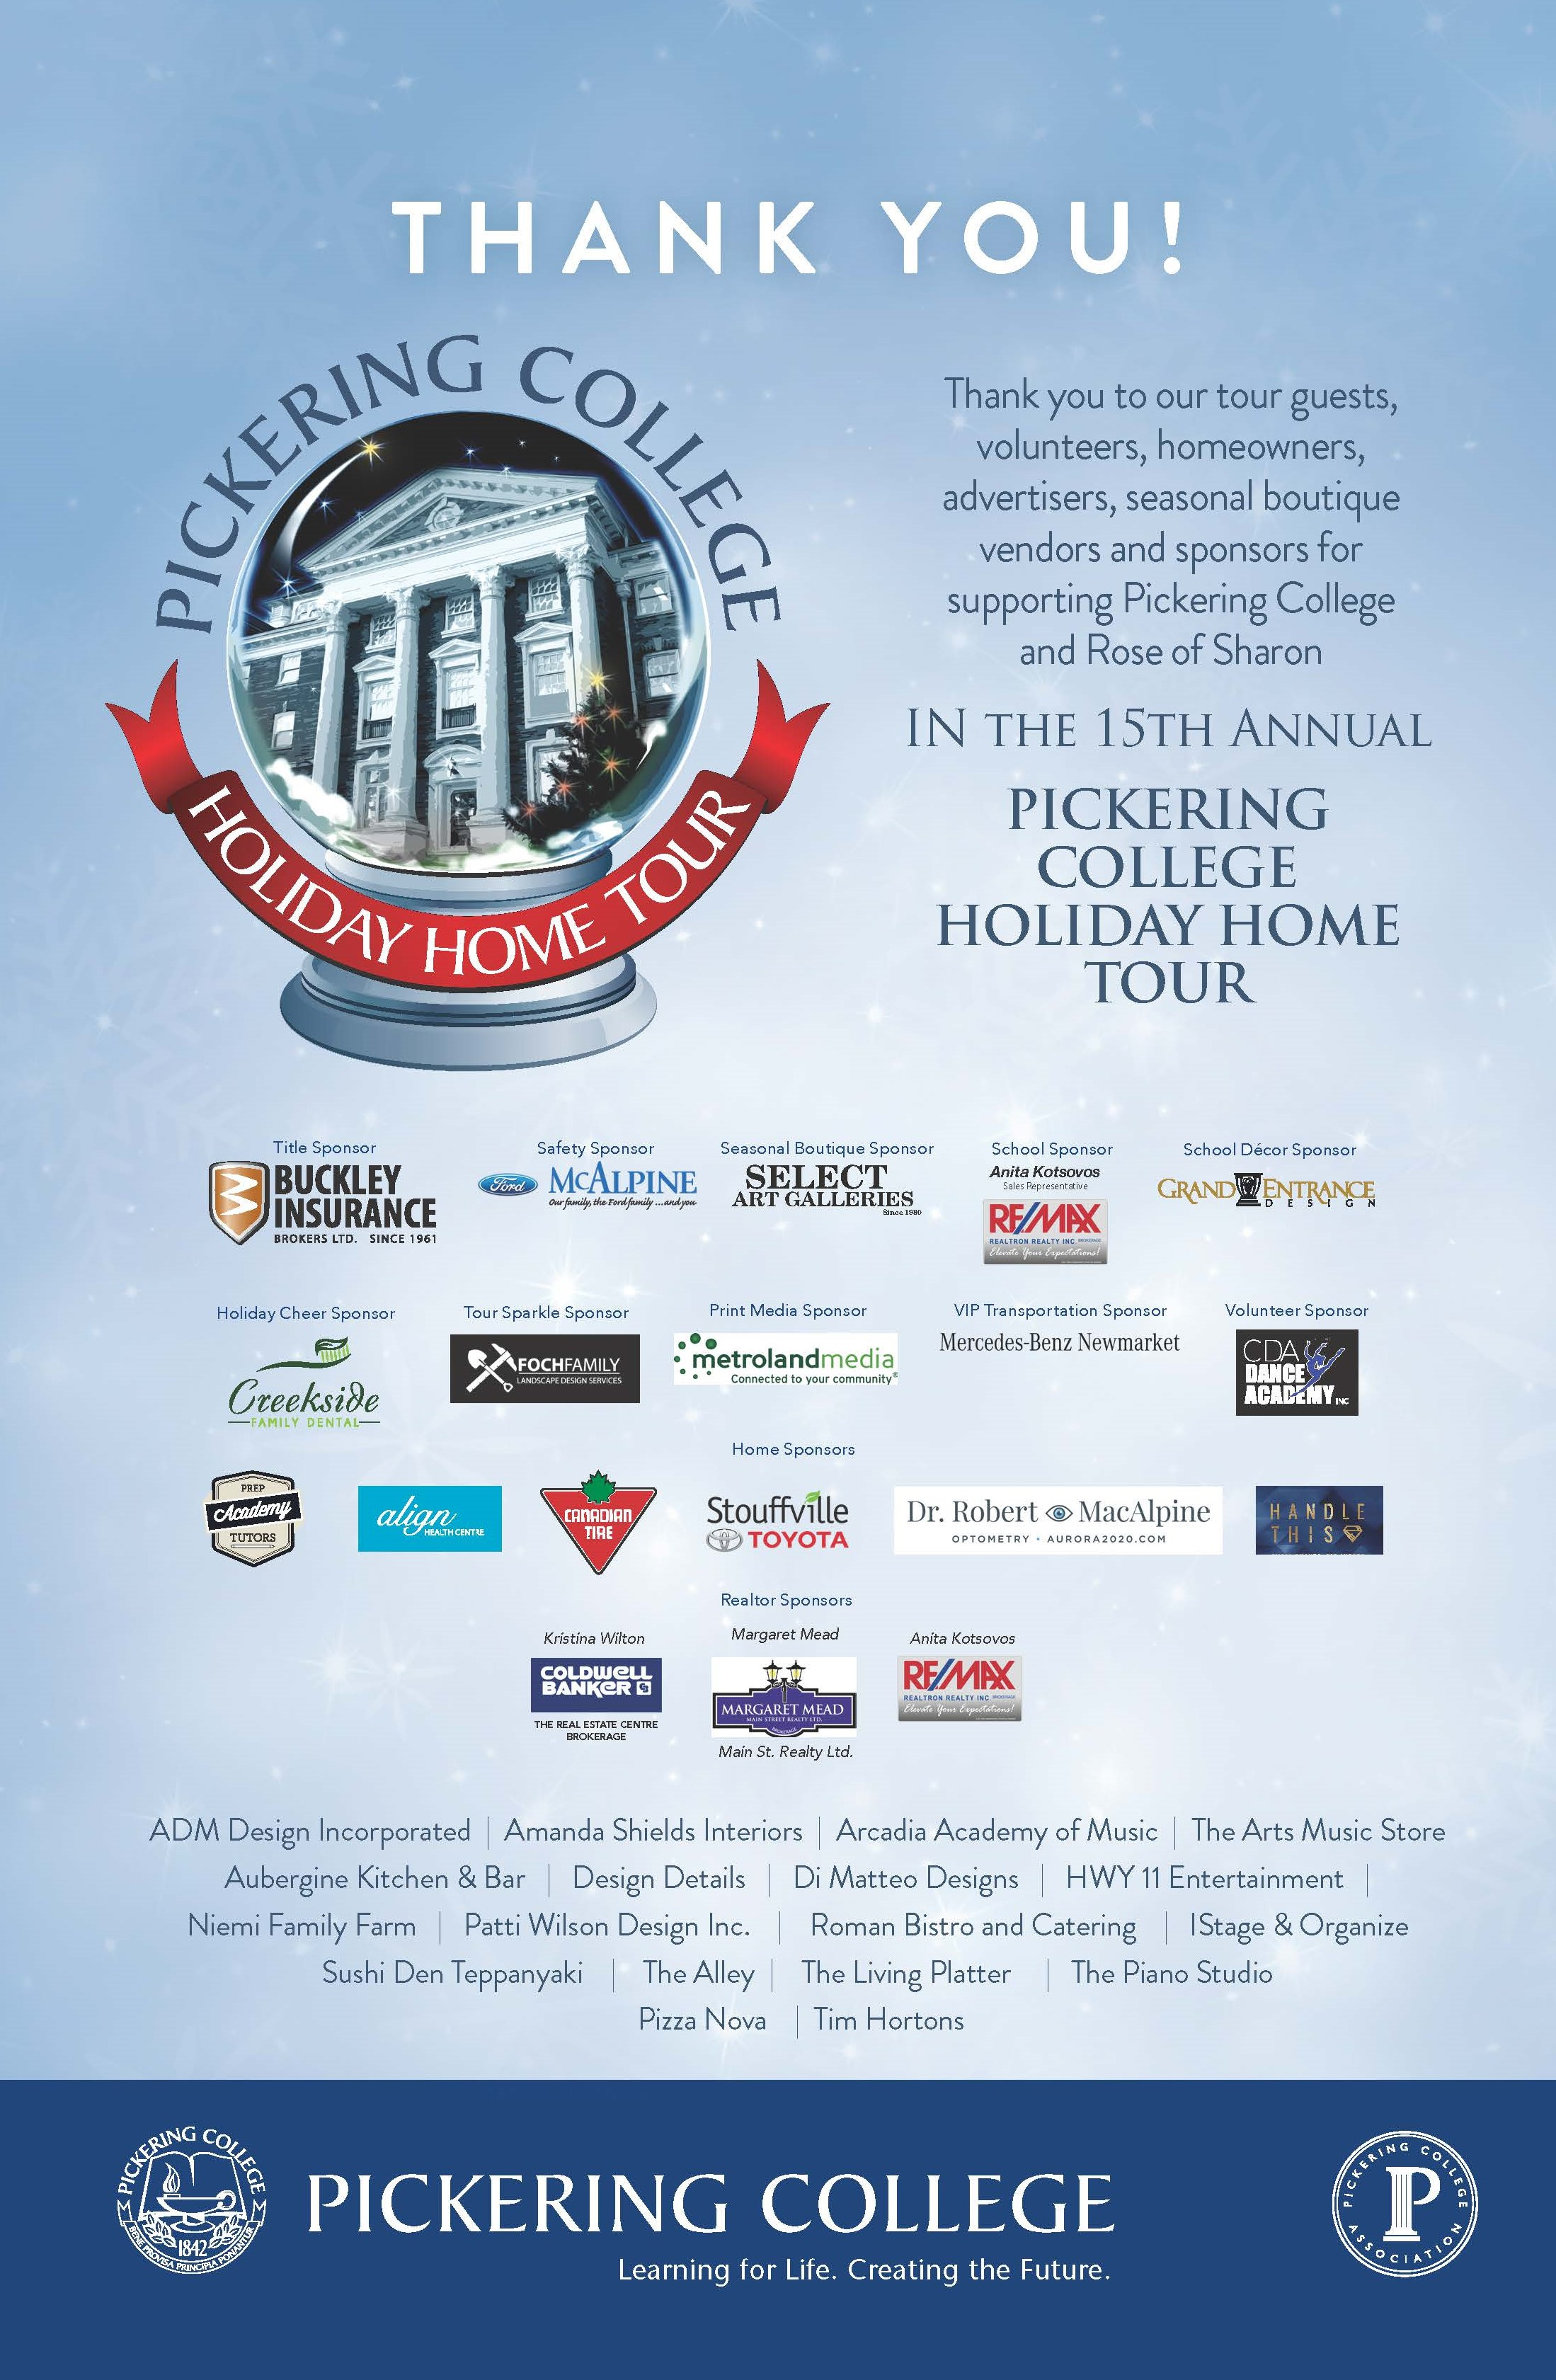 2019 Holiday Home Tour program sponsors